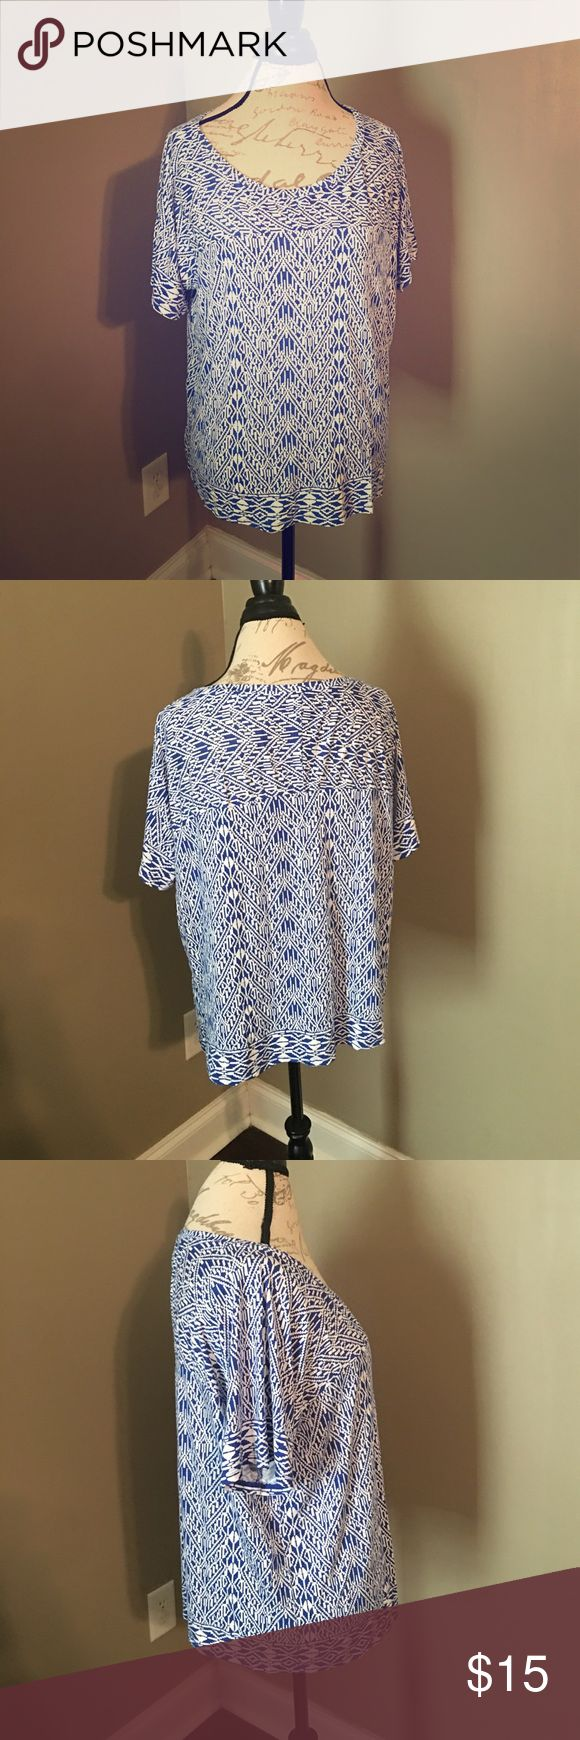 Old Navy blue and white short sleeved top EUC. Super soft and versatile. 100% rayon. Old Navy Tops Blouses